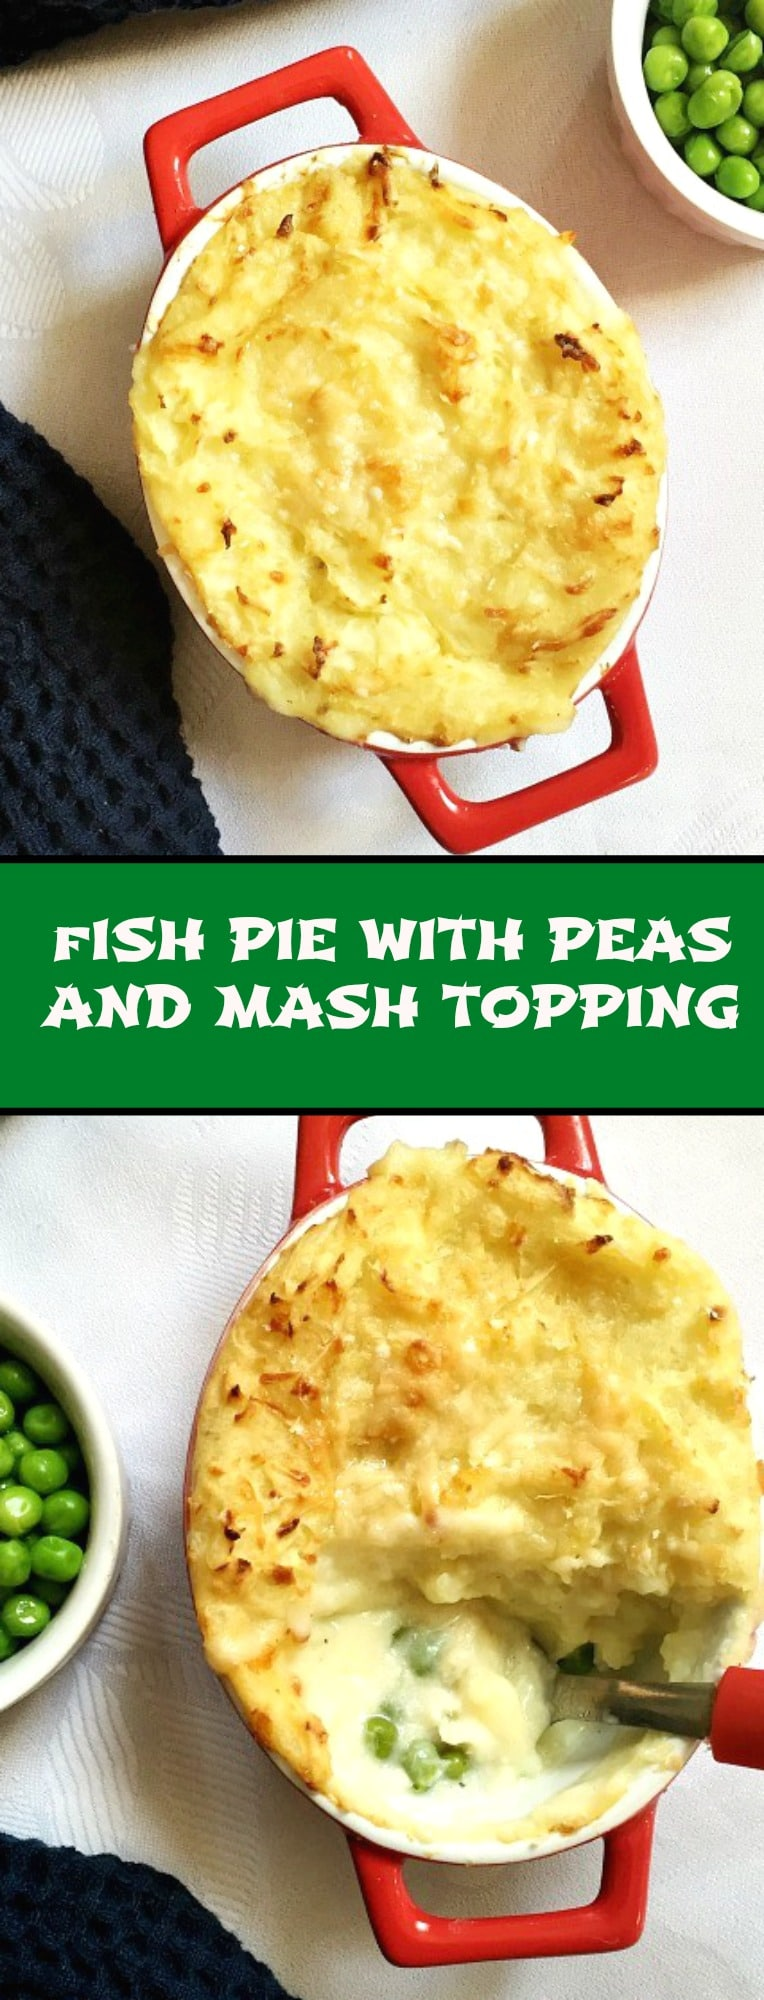 Fish pie with peas and mash topping